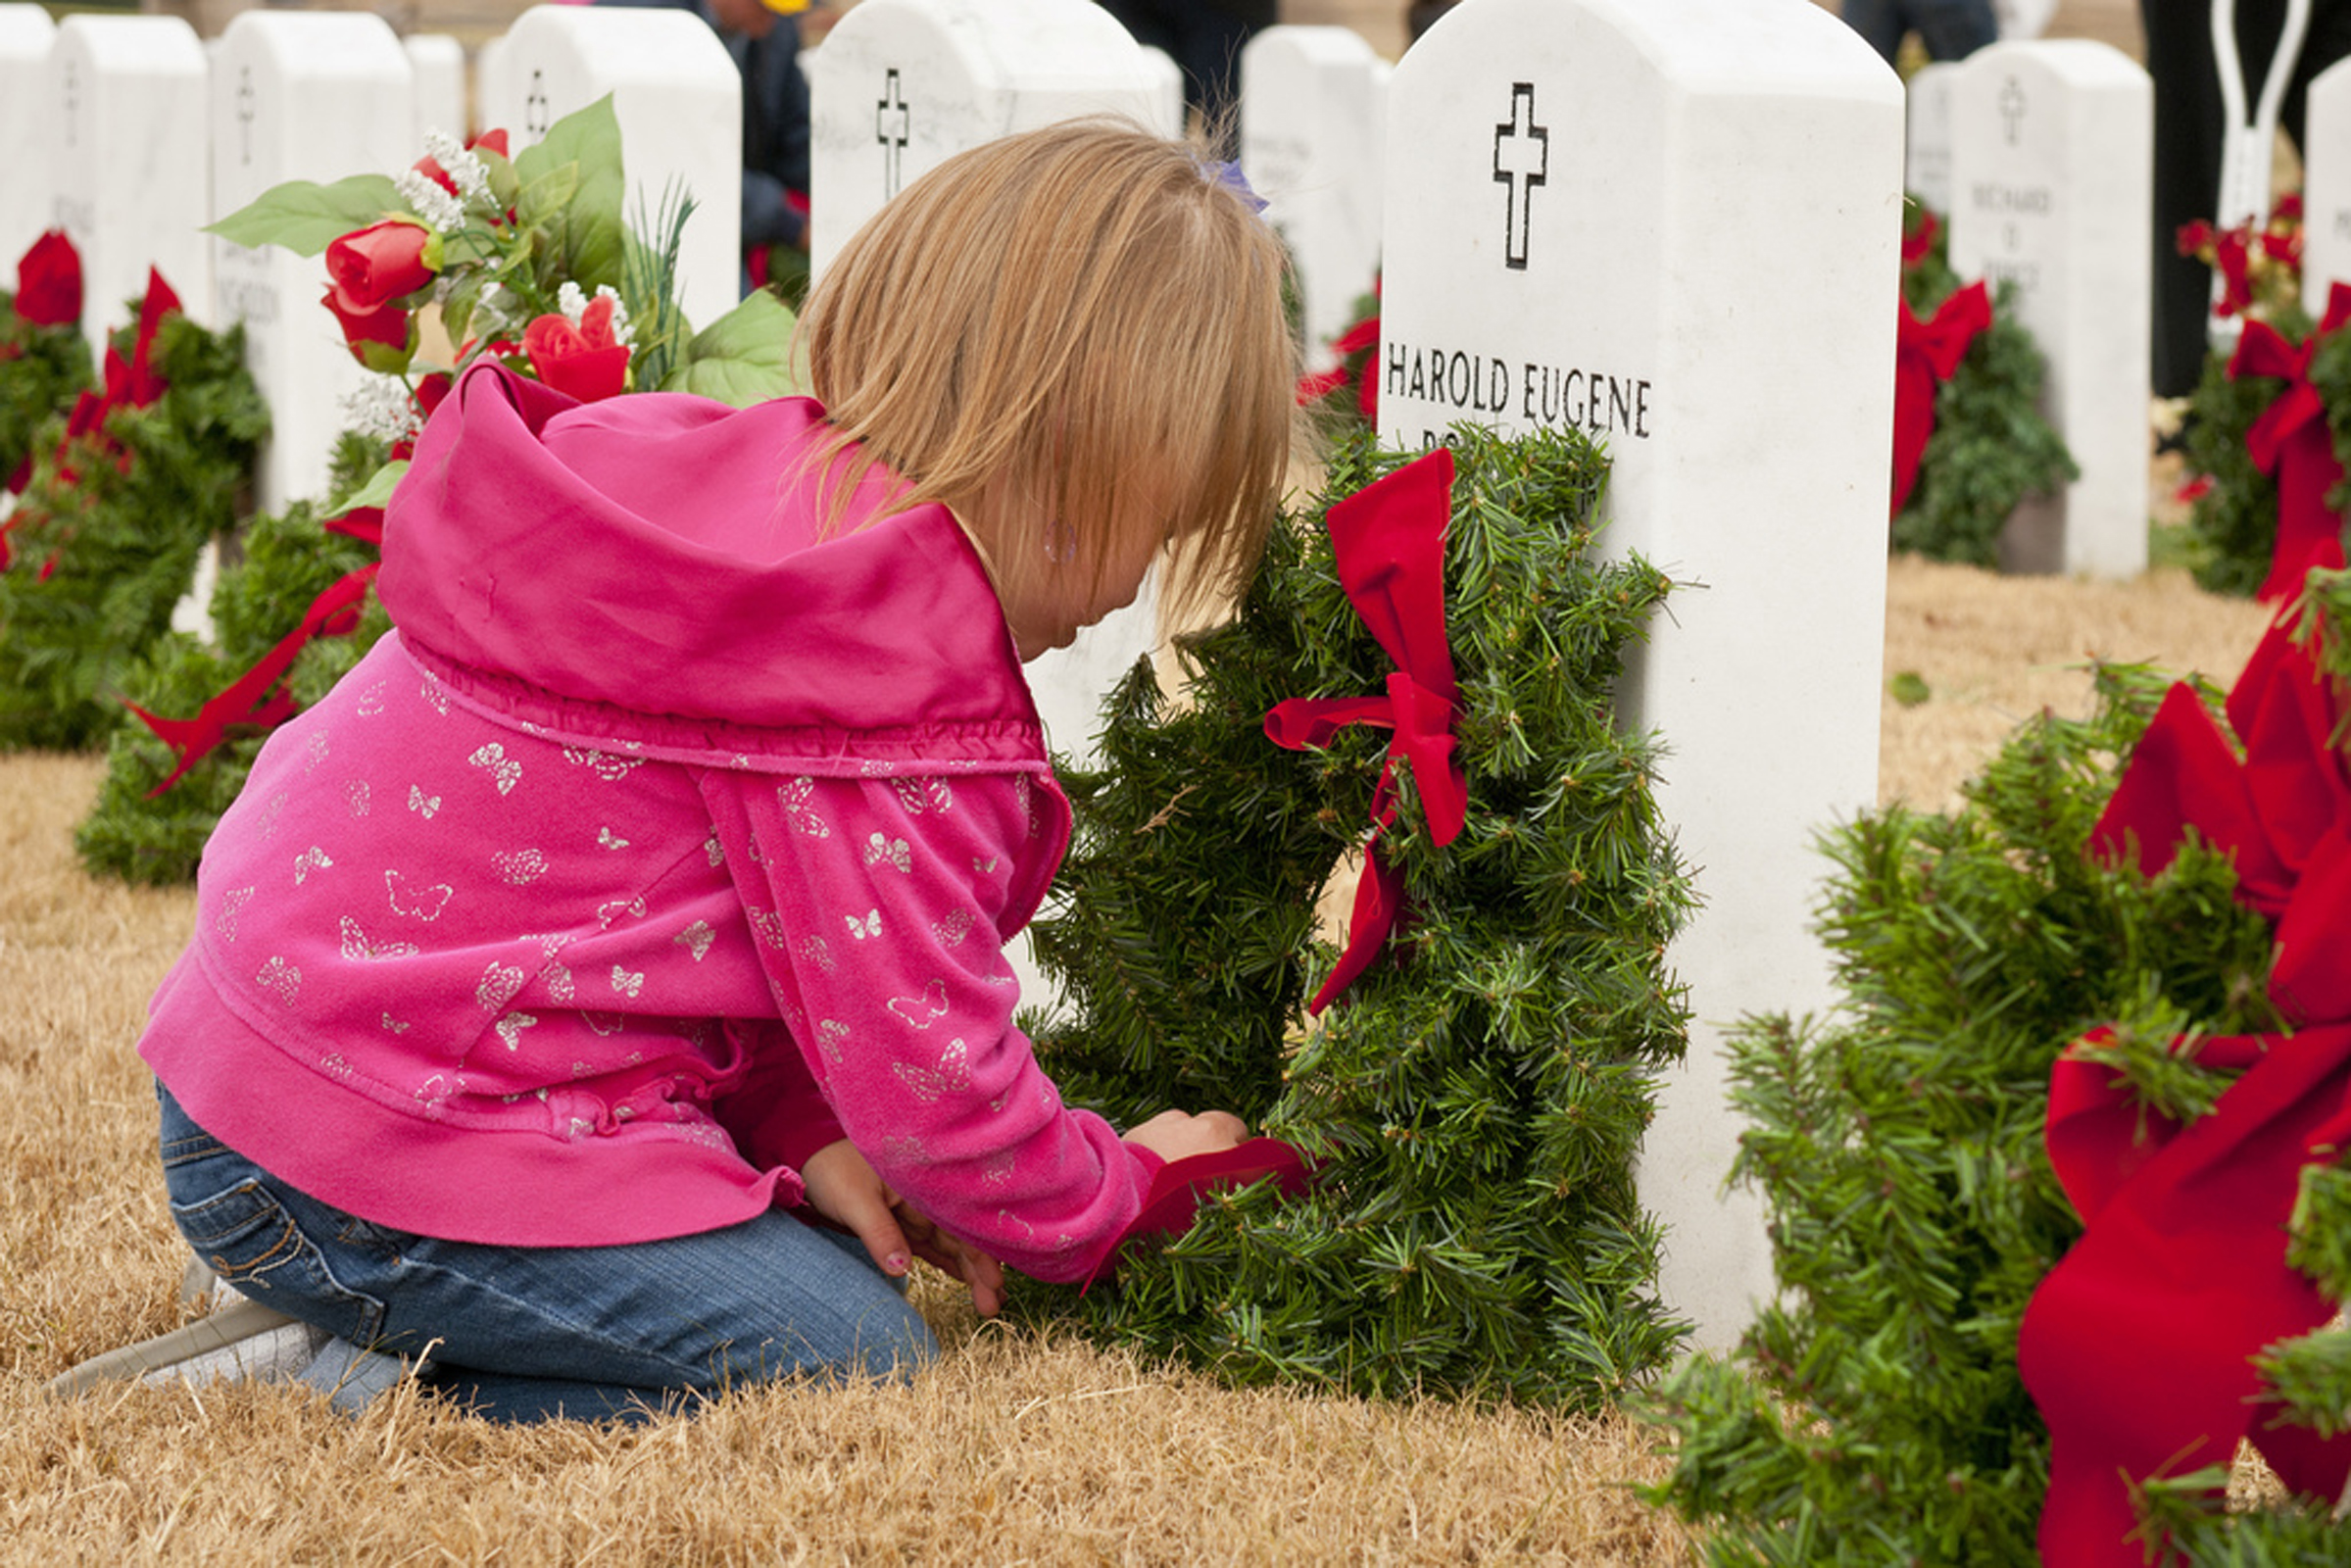 YOUNG GIRL AT GRAVE